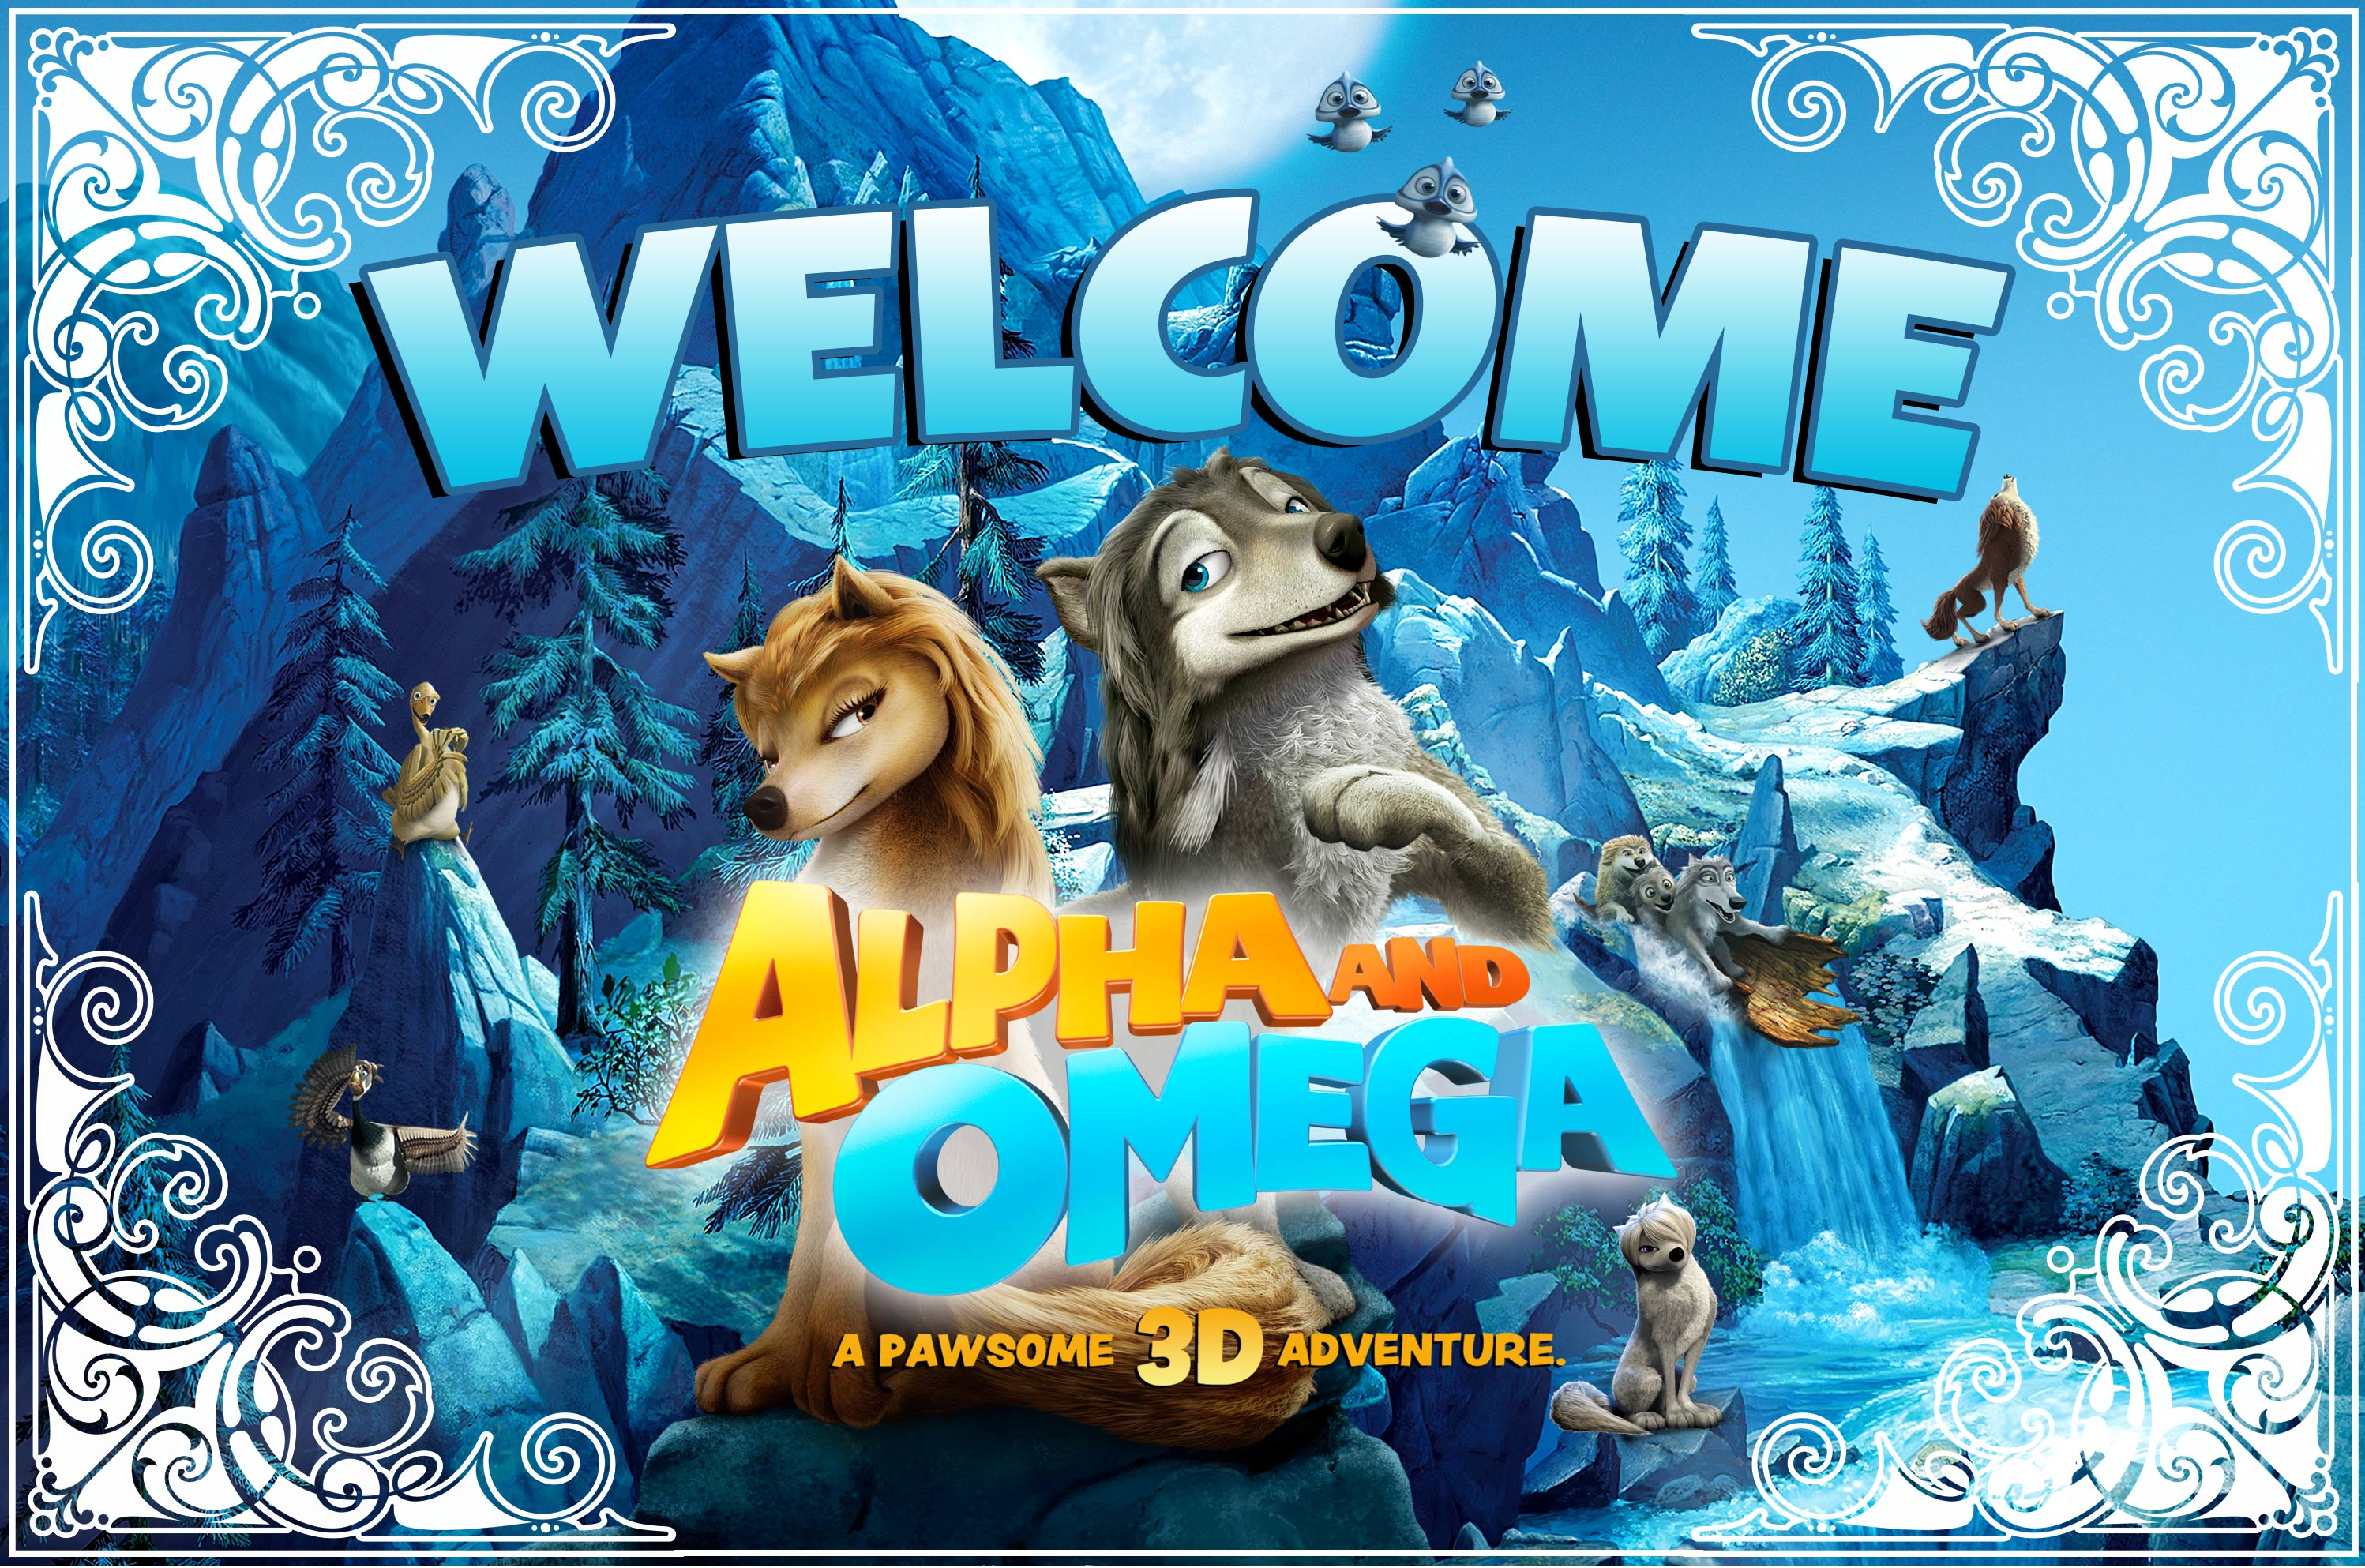 Alpha Blue Movie humphrey and kate from alpha and omega desktop wallpaper